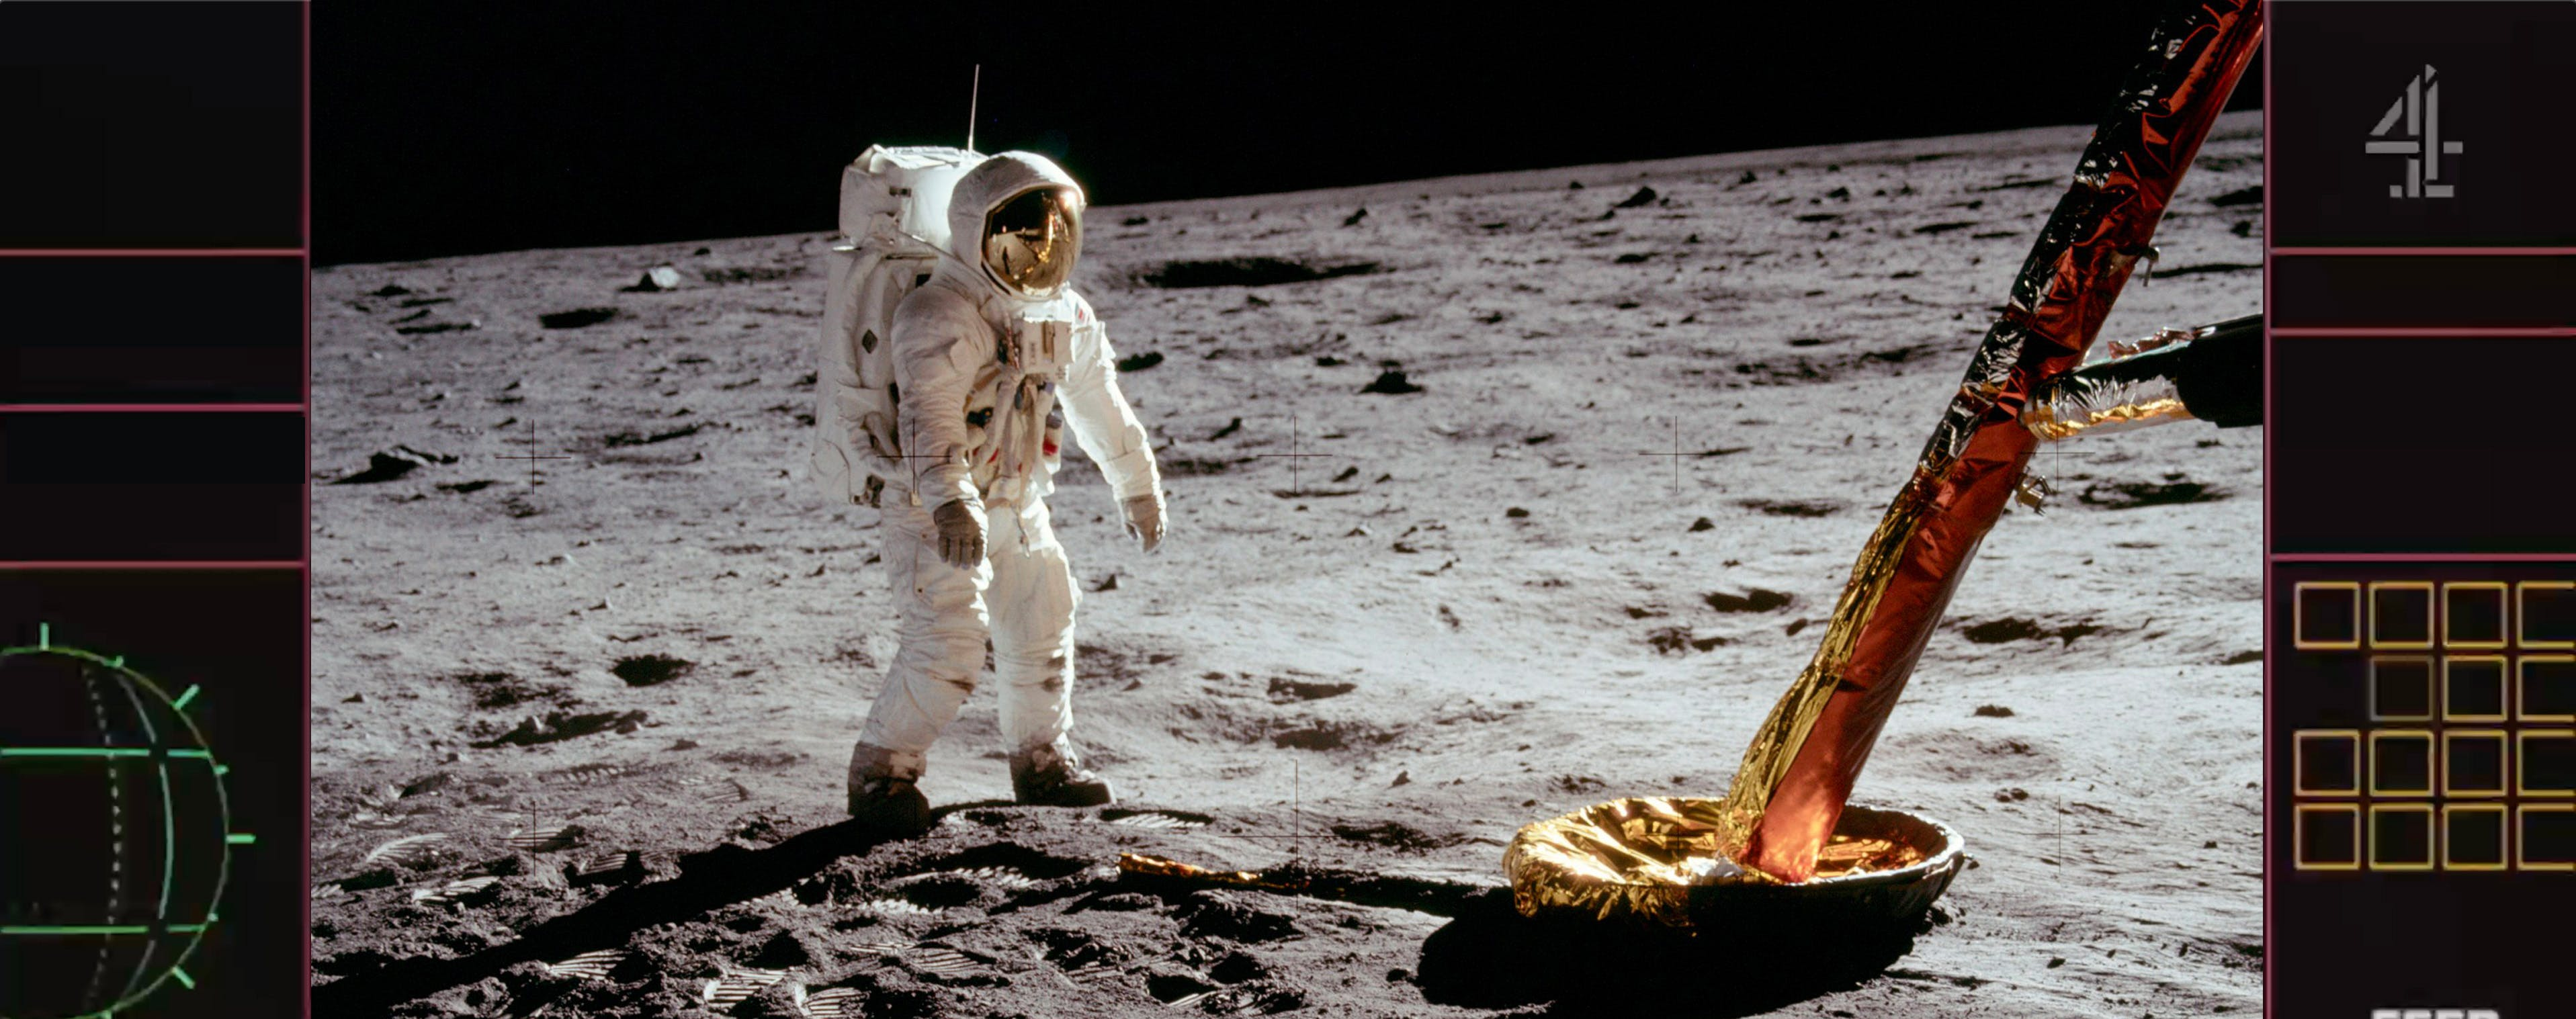 Channel 4 moon landings livestream